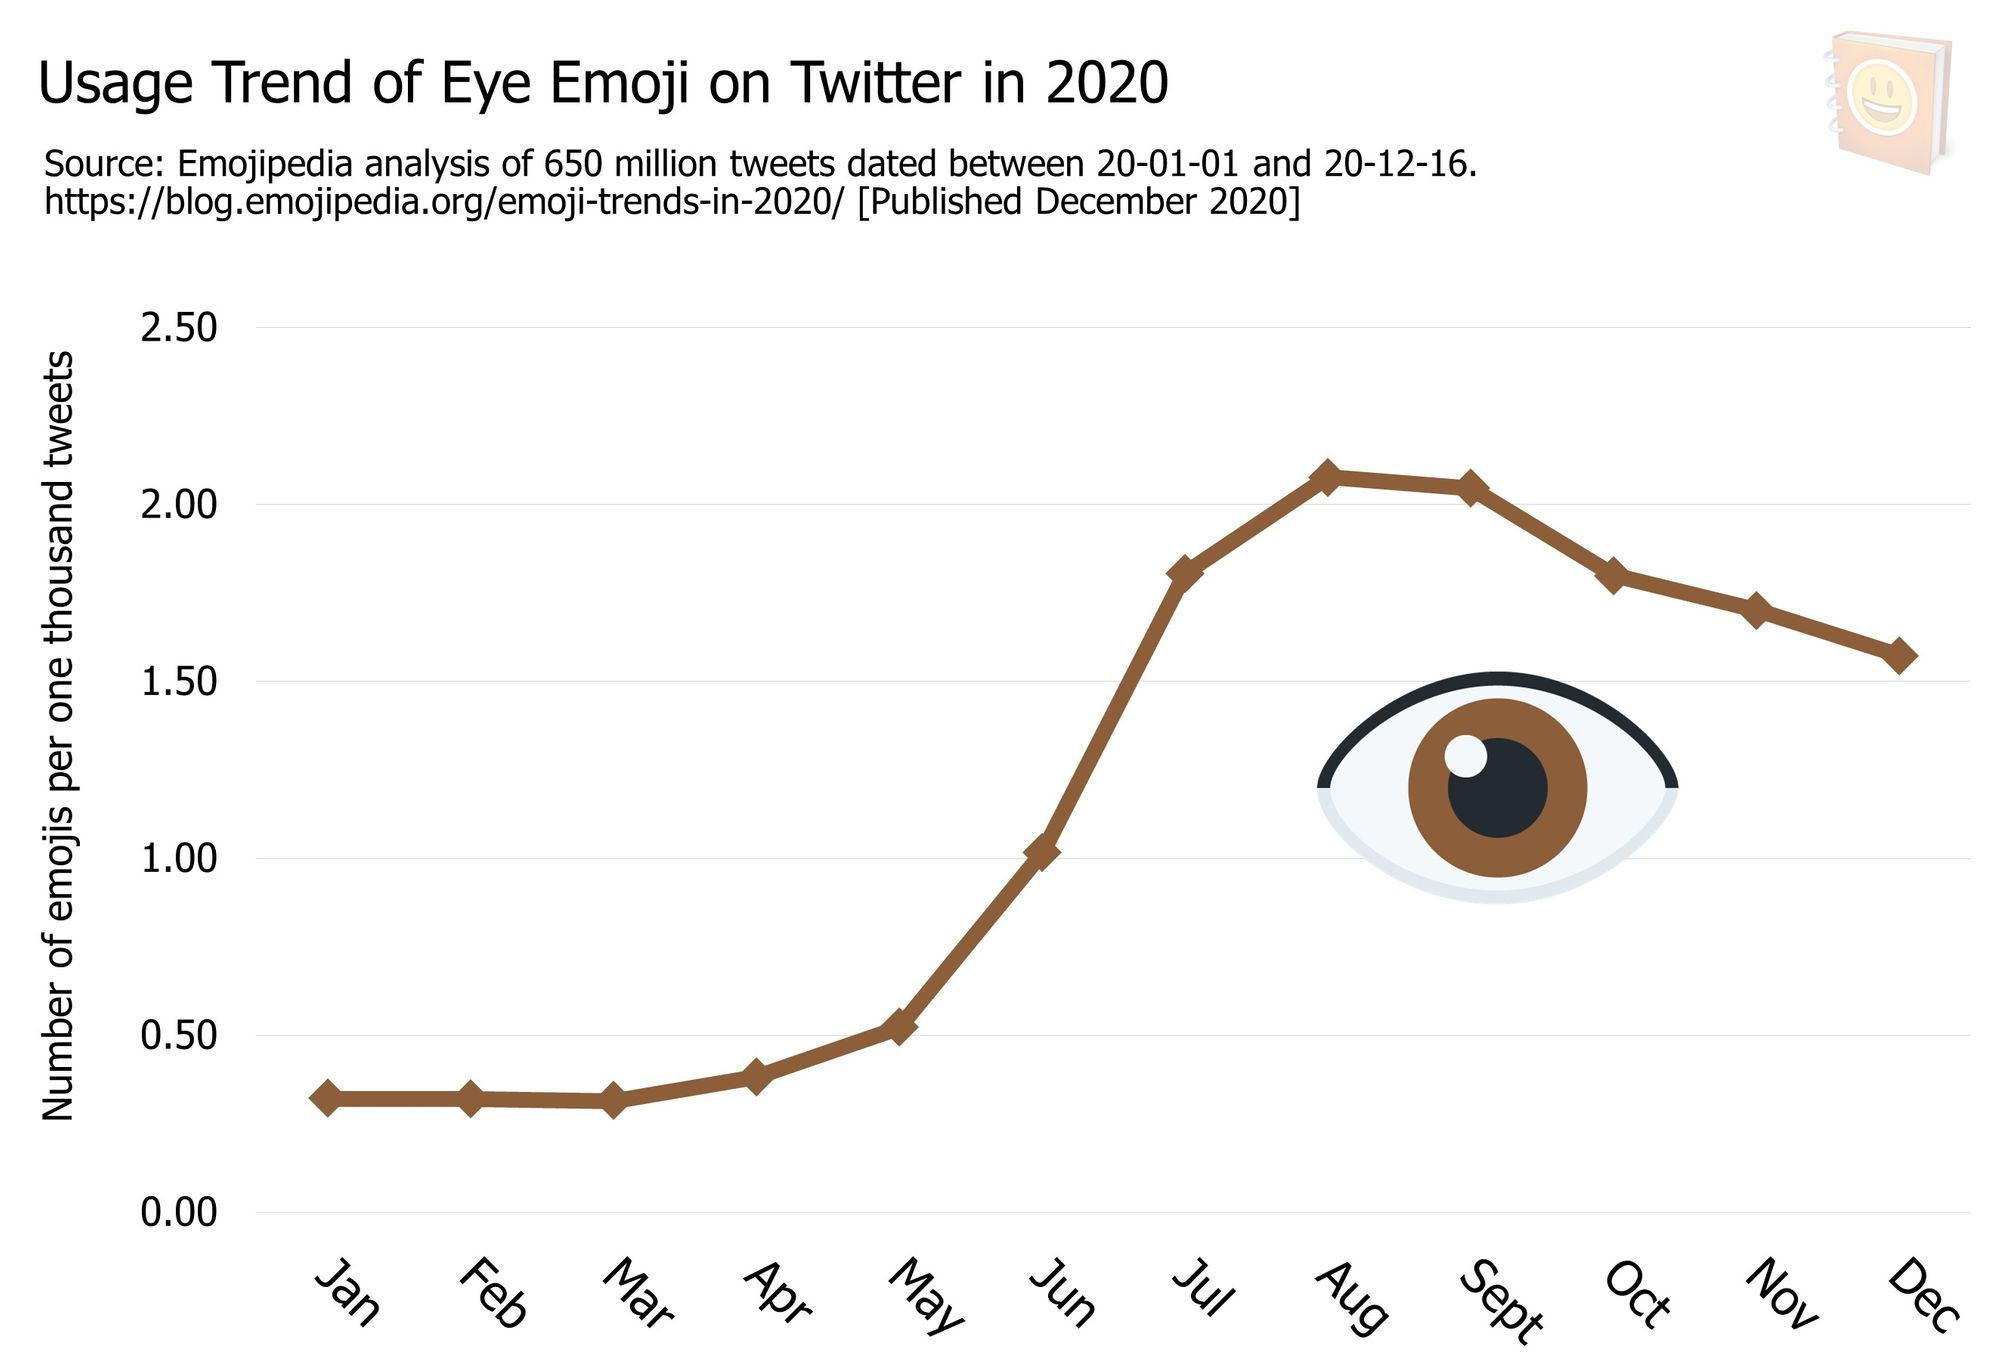 Emoji-Trends-In-2020---Usage-Trend-of-Eye-Emoji-on-Twitter-in-2020